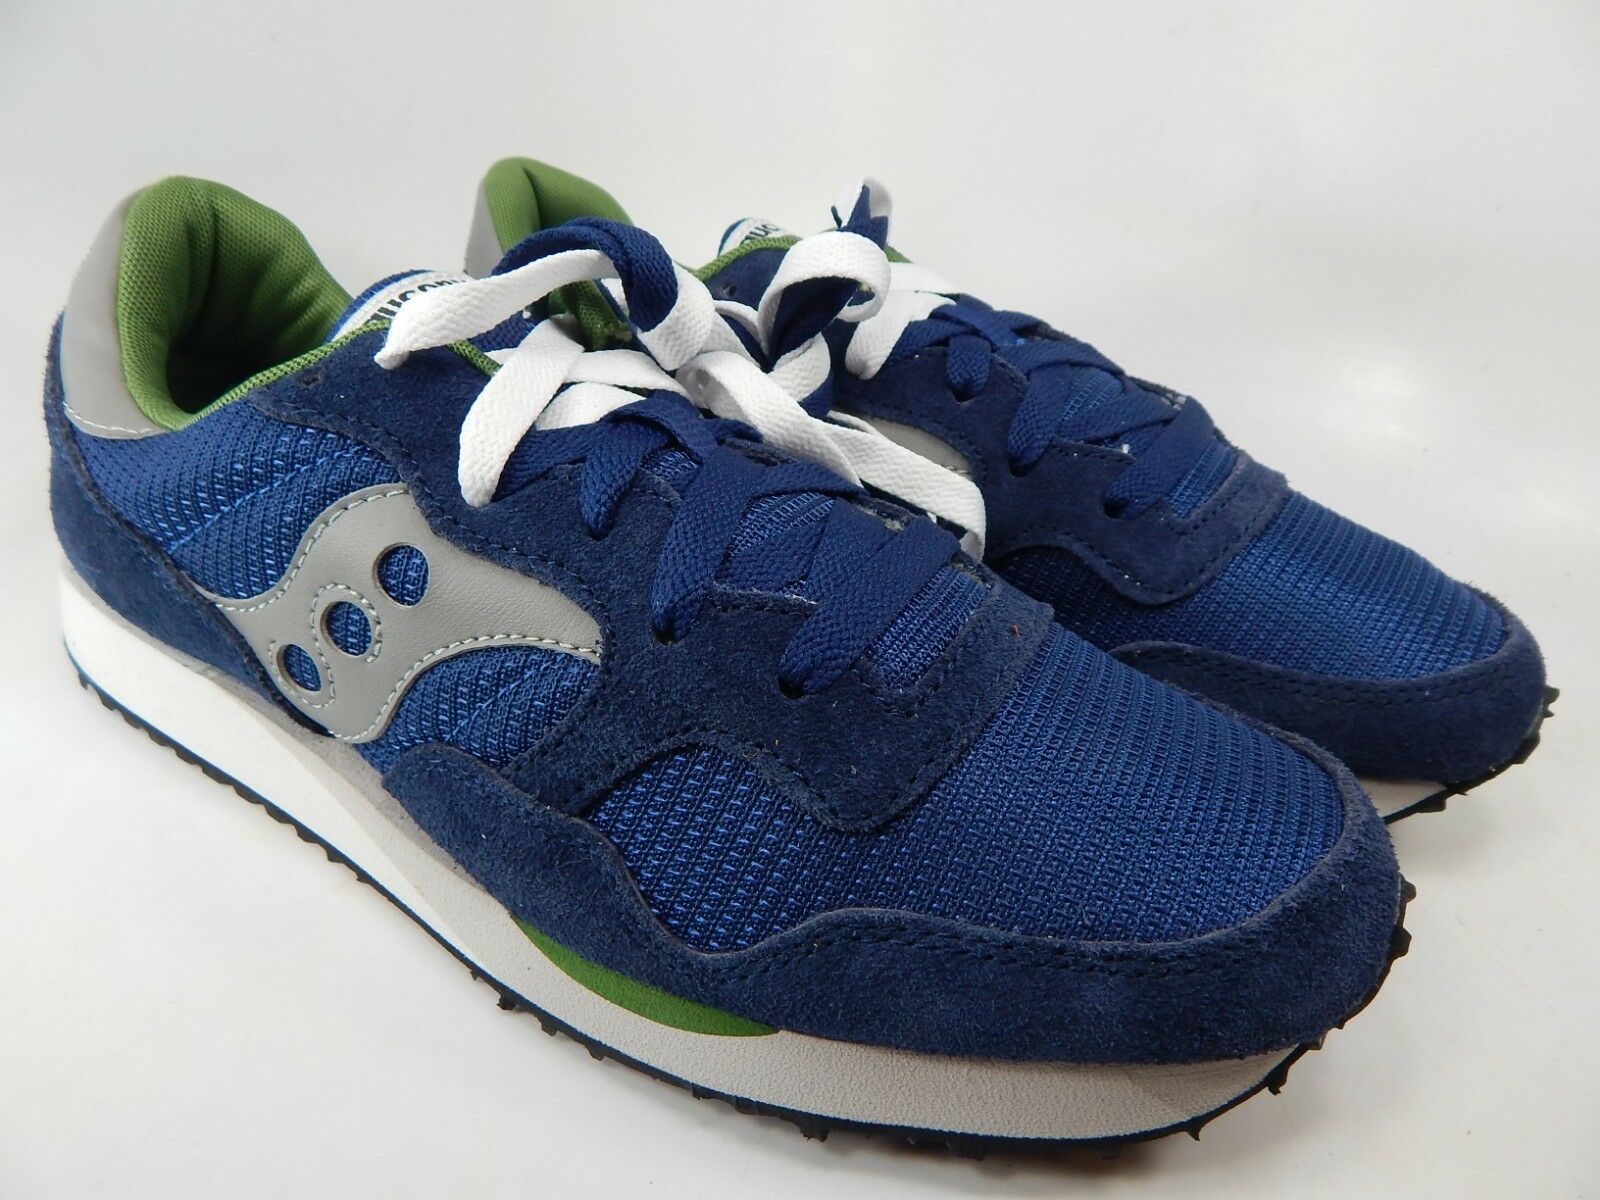 Saucony DXN Trainer S70124-37 Size 9 M (D) Men's Running shoes Navy bluee